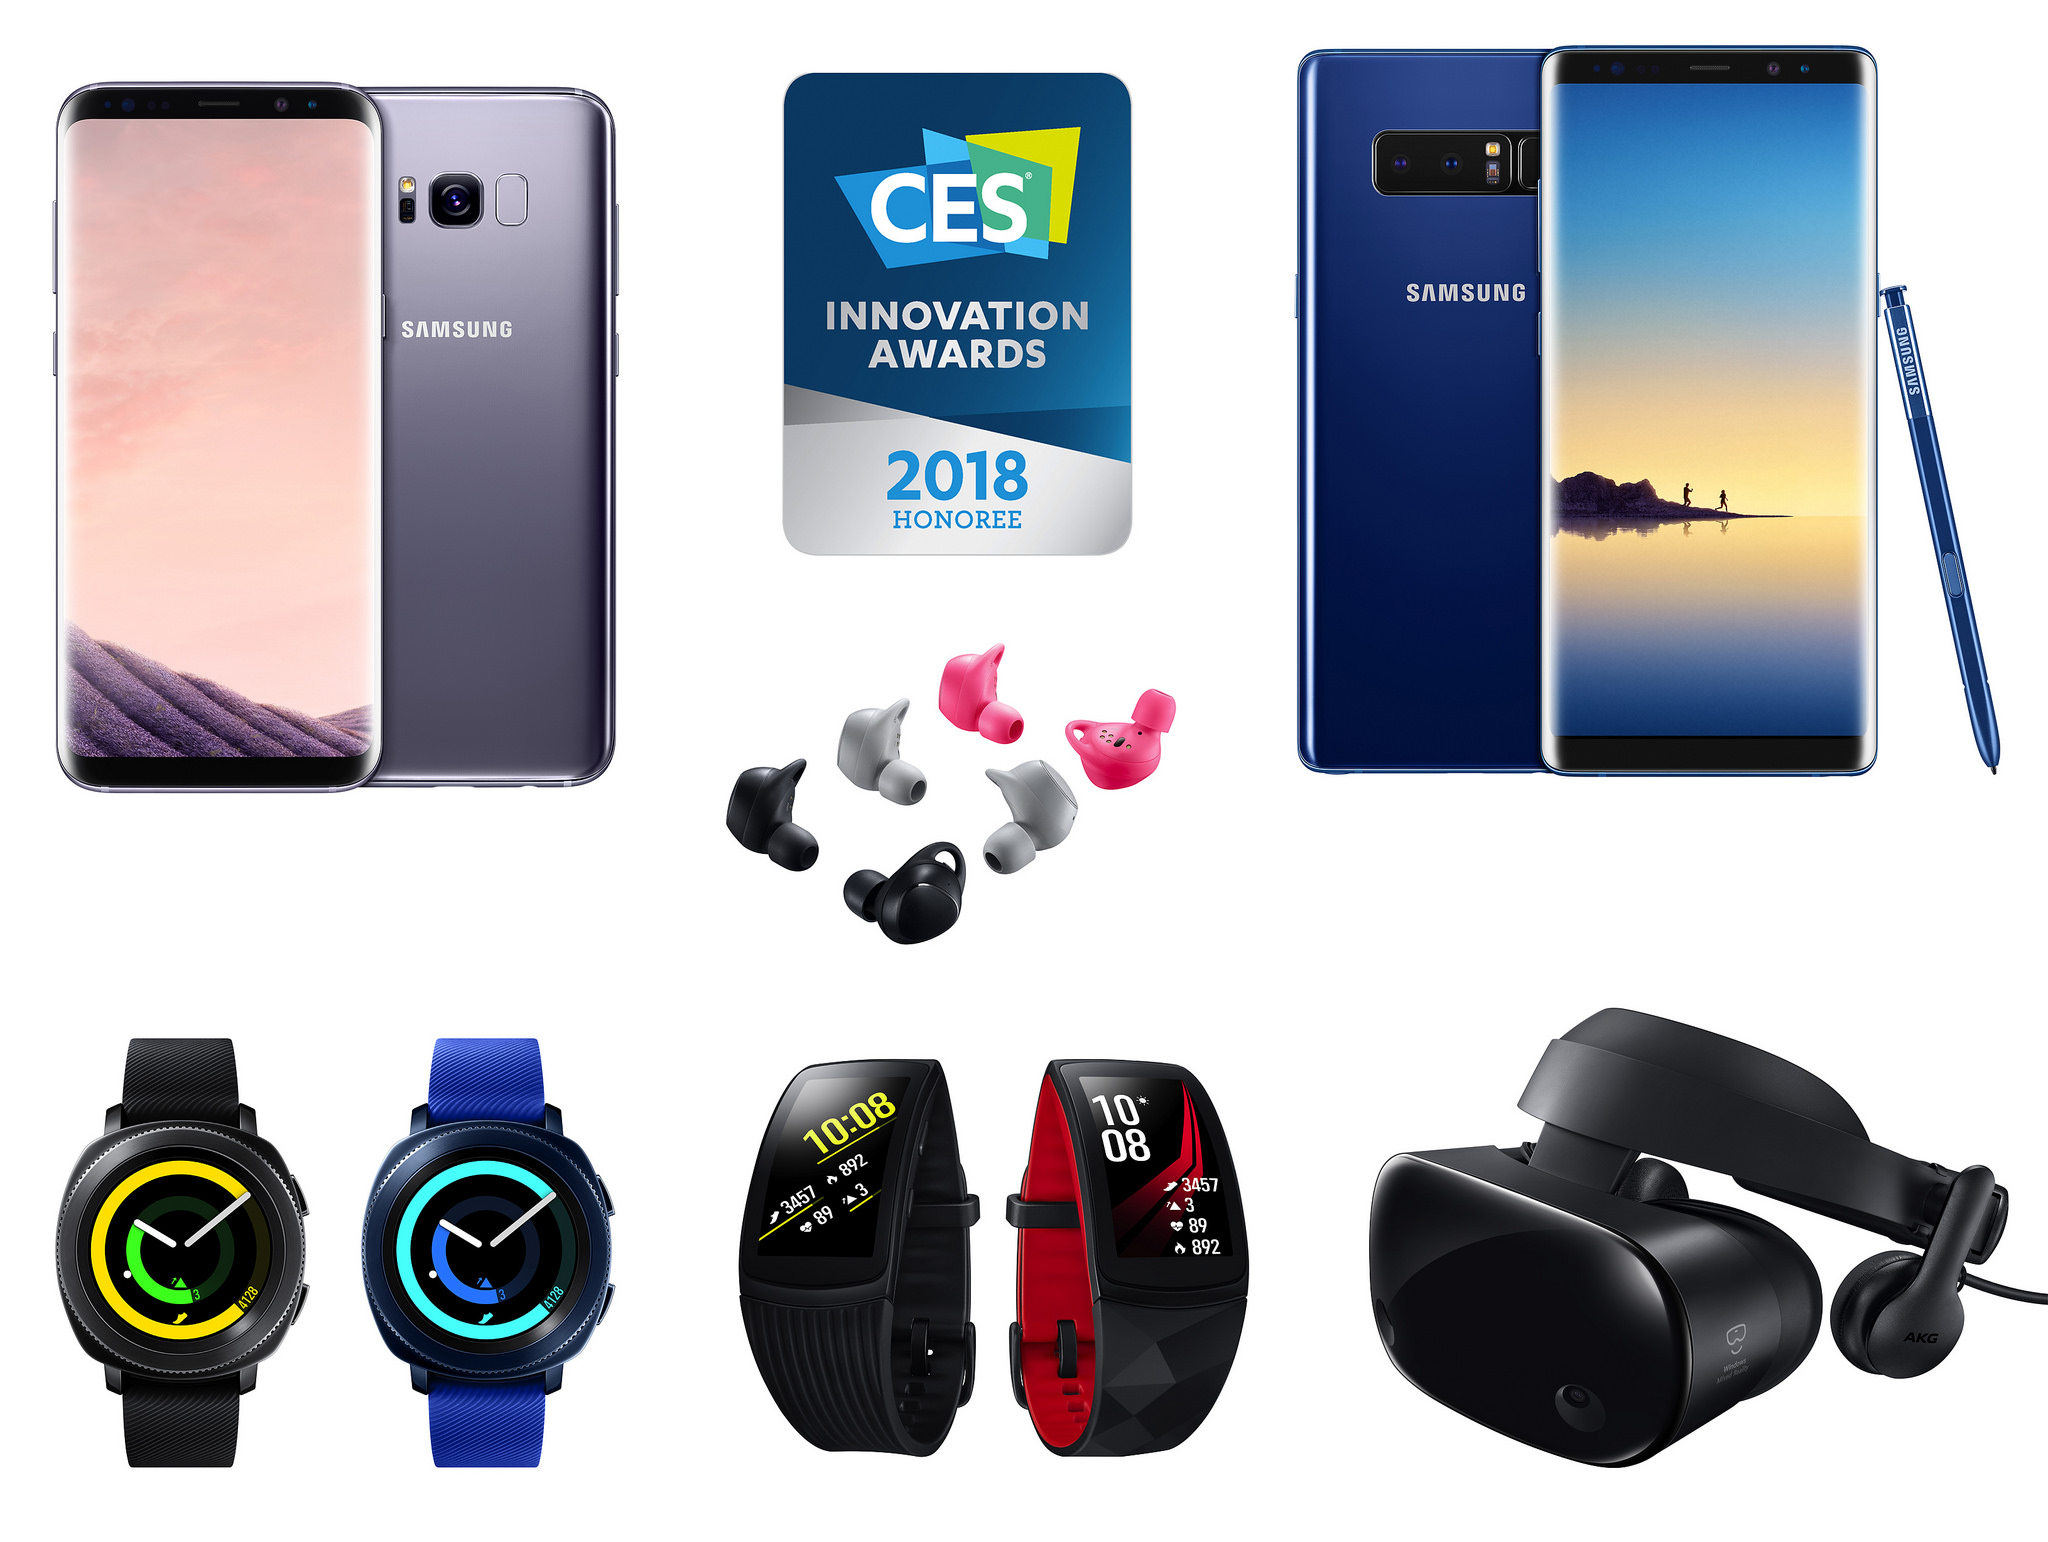 Samsung Carnival on Amazon and Samsung Shop Offer Cashback ... |Samsung Products